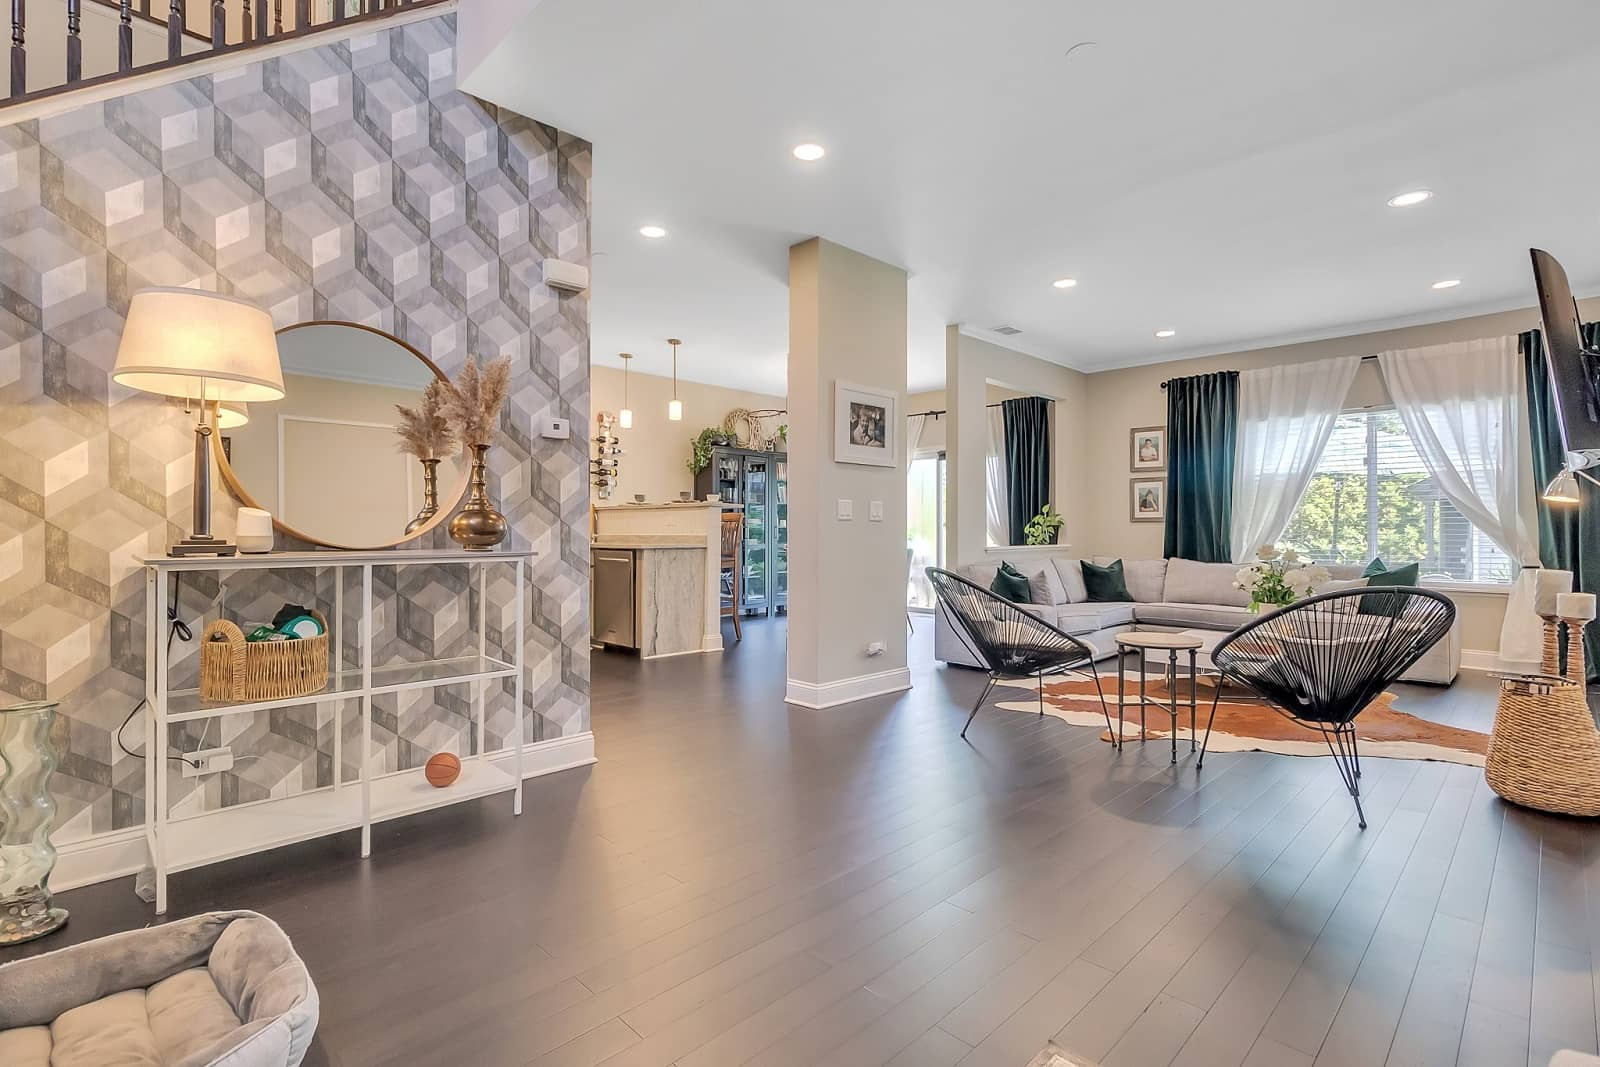 Real Estate Photography in Elgin - IL - USA - Indoor View